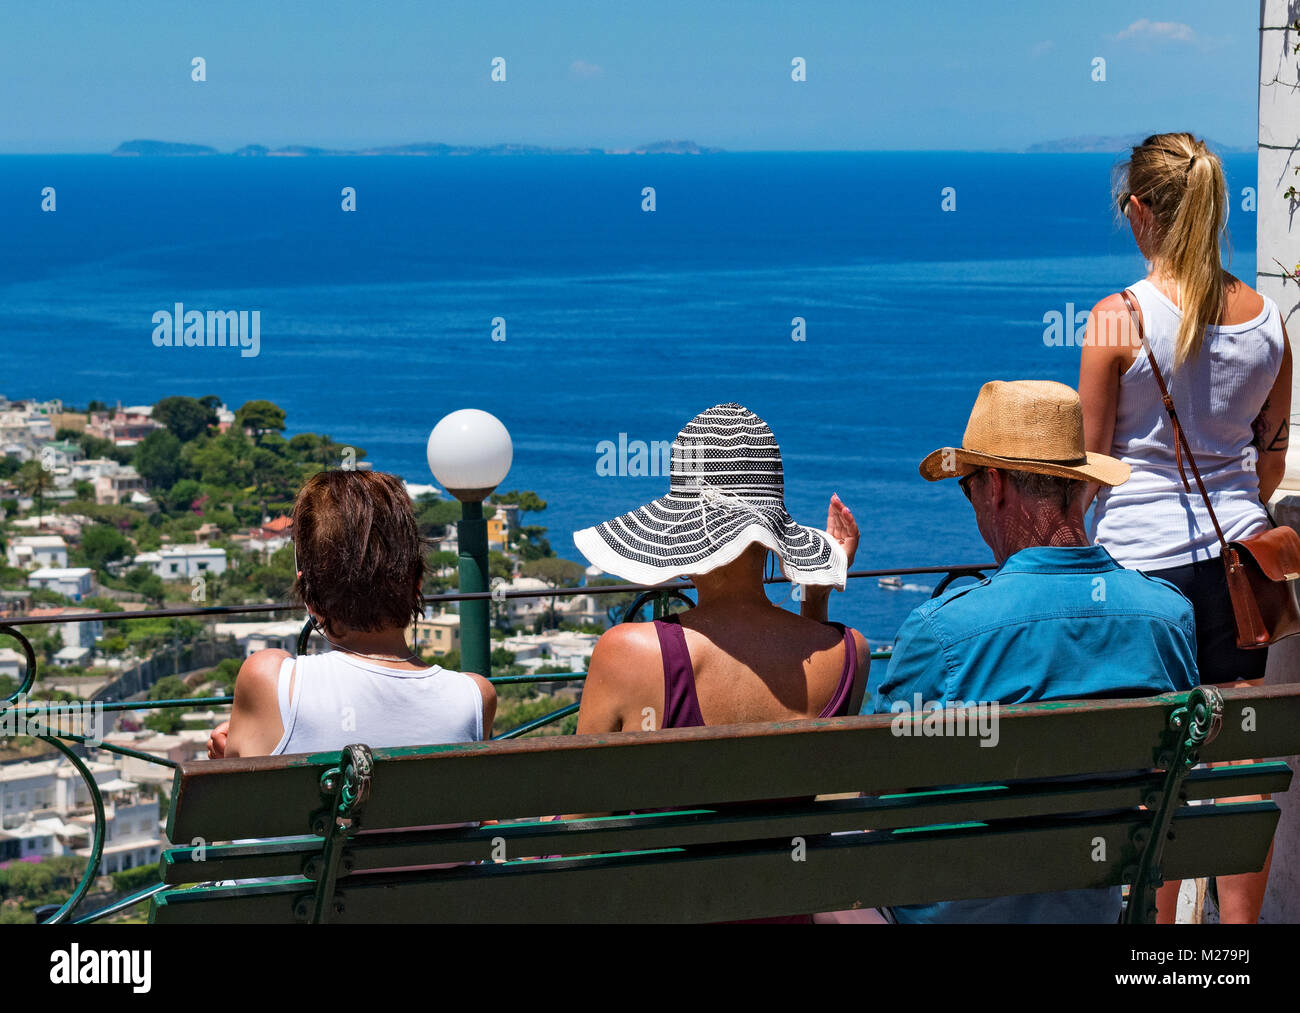 visitors enjoying the view over the bay of naples from the island of capri, italy. - Stock Image